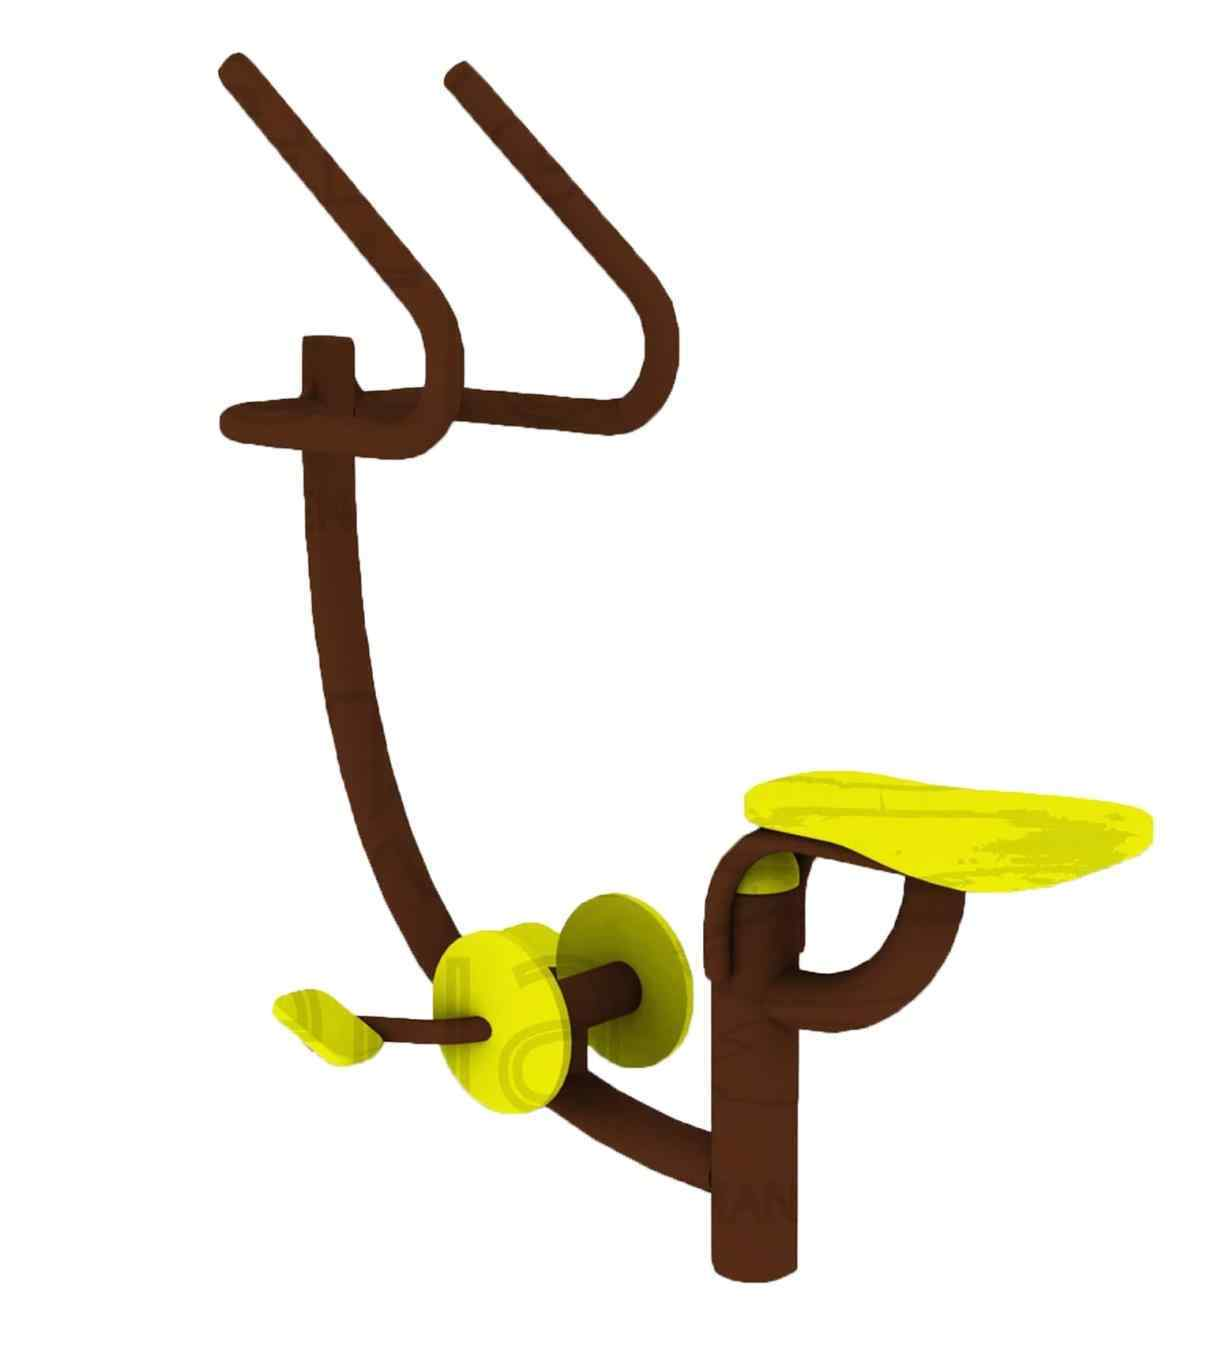 Fitness clipart outdoor fitness. New equipment range of